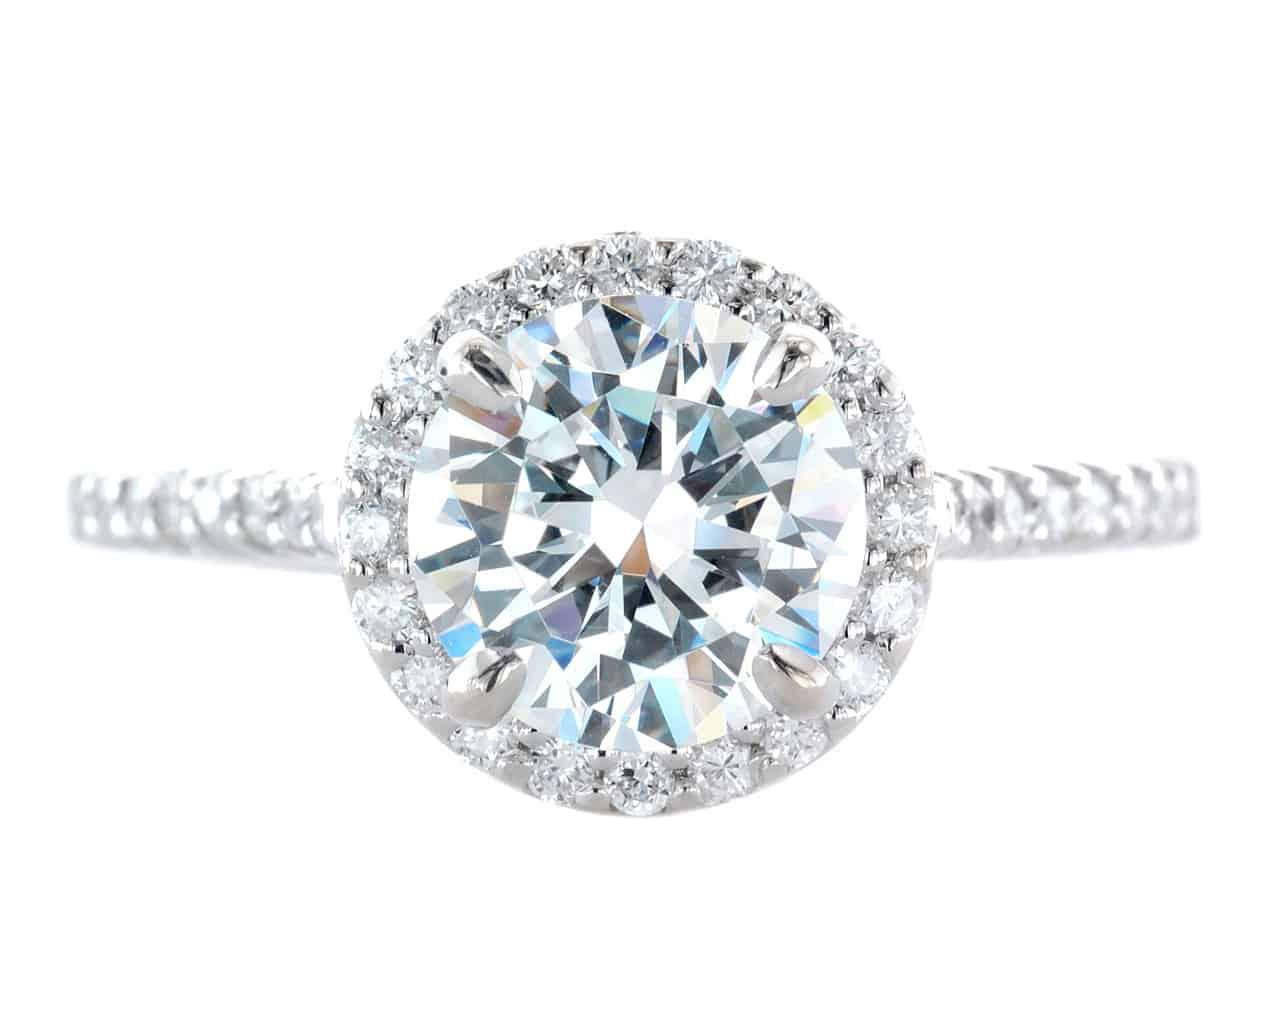 A platinum wedding ring with a round brilliant-cut center diamond